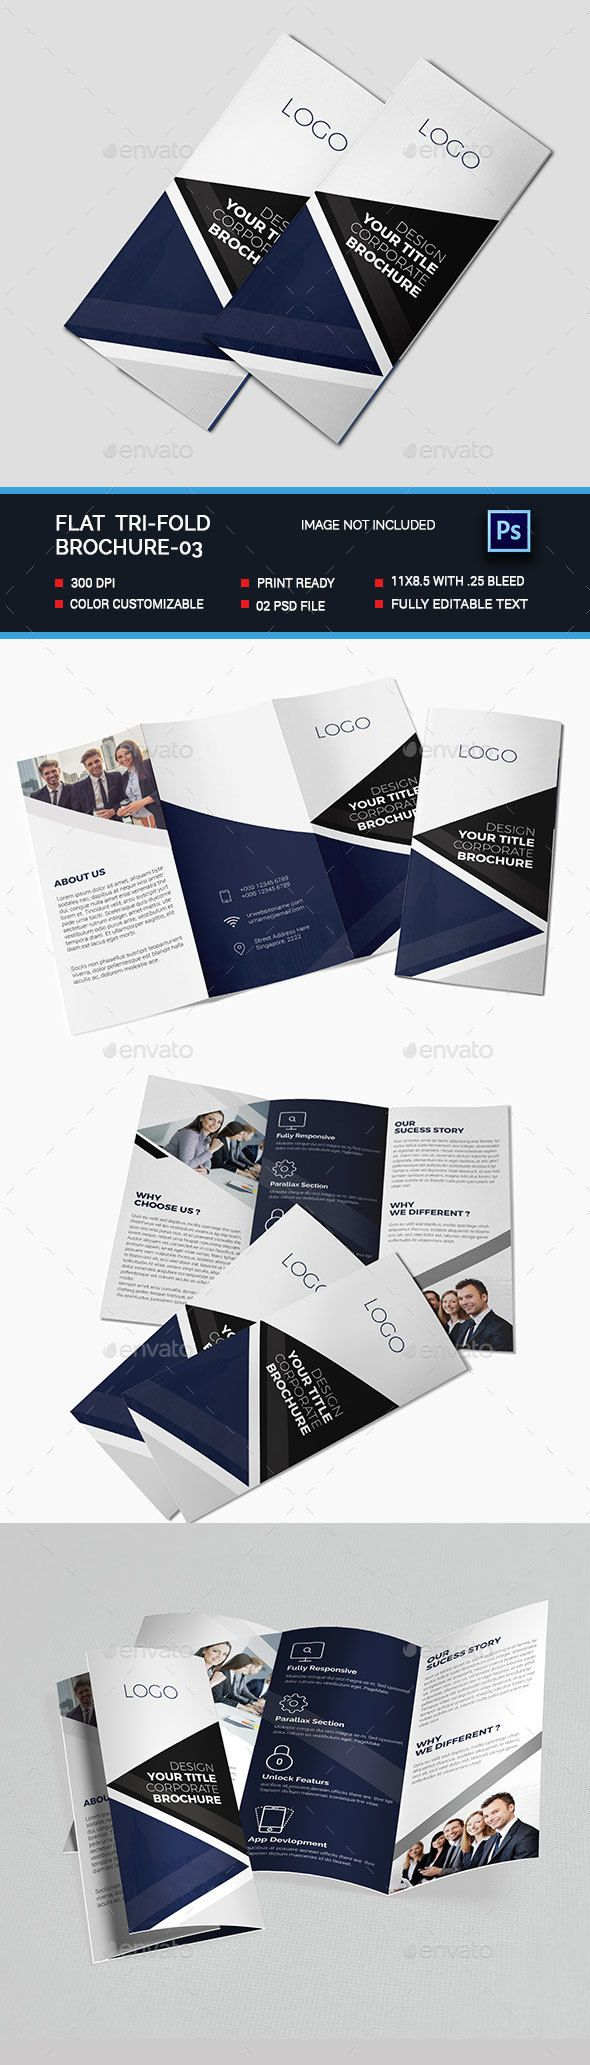 Tri-fold Brochure Template PSD. Download here…